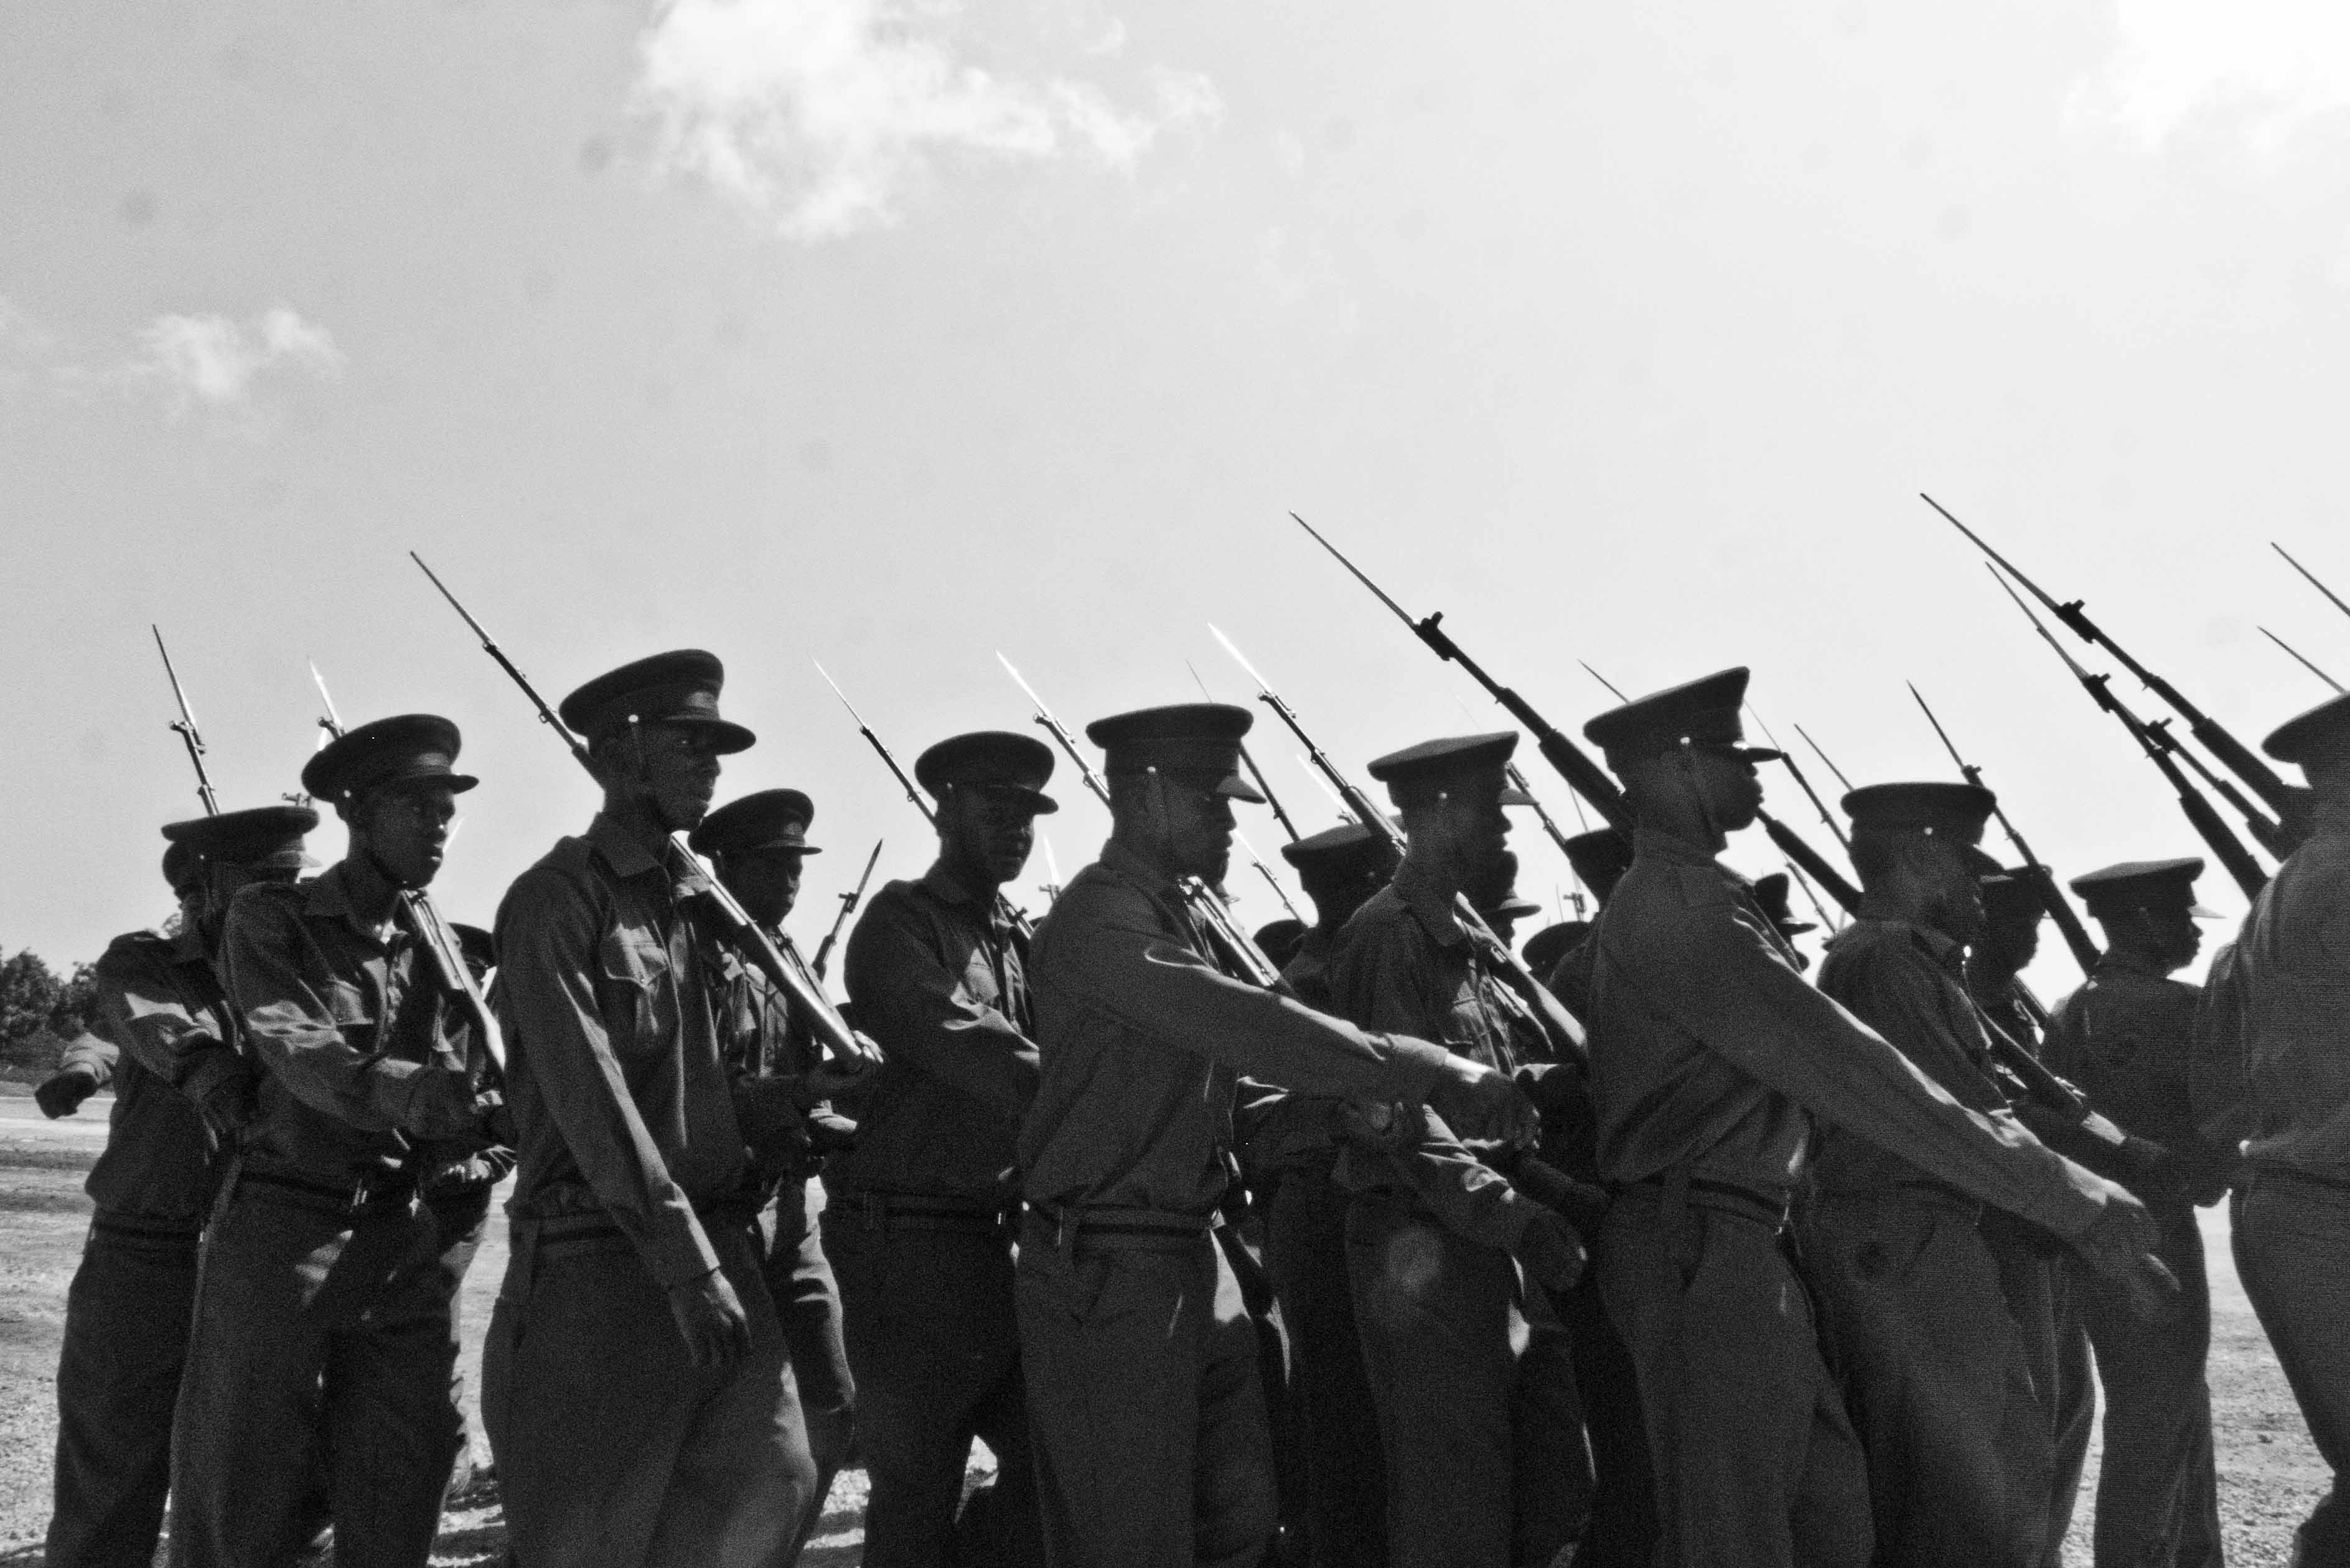 Silhouettes of soldiers marching